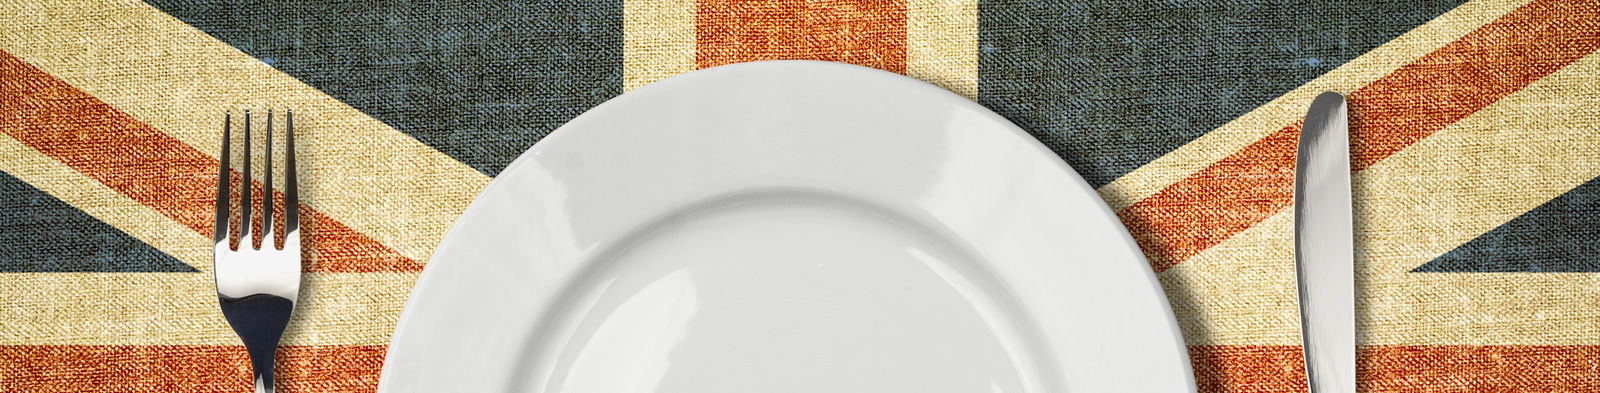 Plate, knife and fork on a Union Jack background